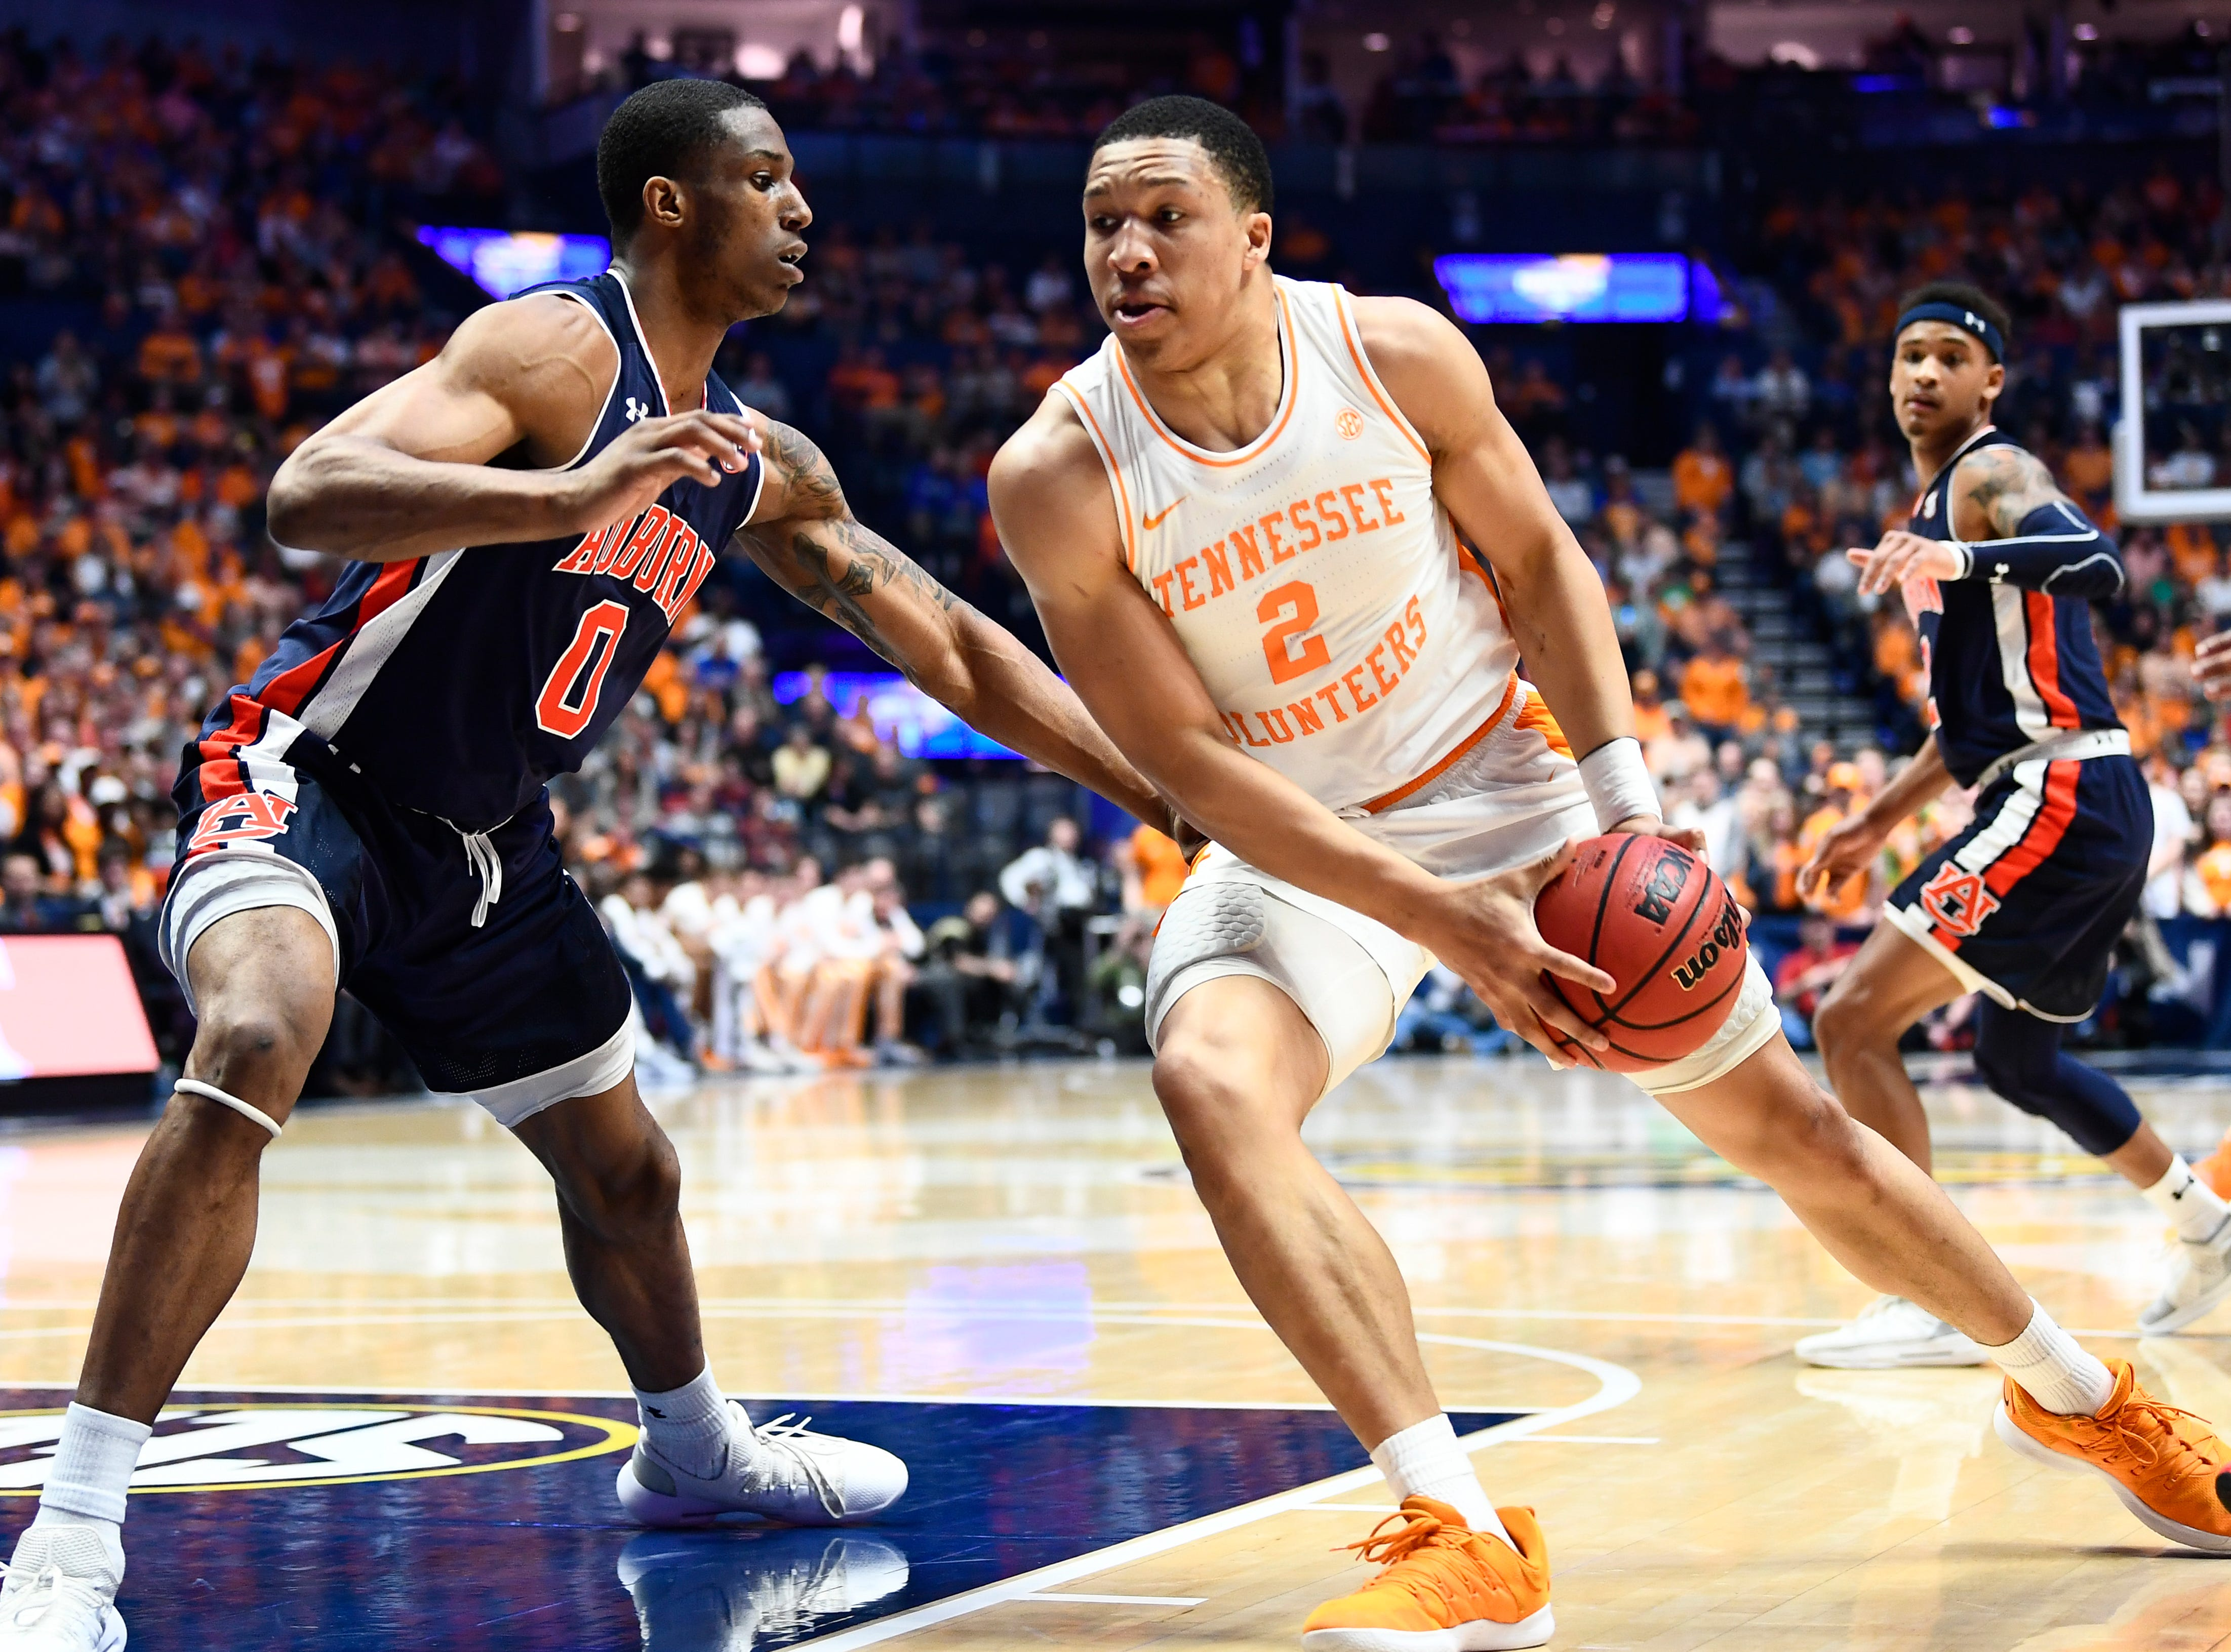 Tennessee forward Grant Williams (2) is defended by Auburn forward Horace Spencer (0) during the first half of the SEC Men's Basketball Tournament championship game at Bridgestone Arena in Nashville, Tenn., Sunday, March 17, 2019.